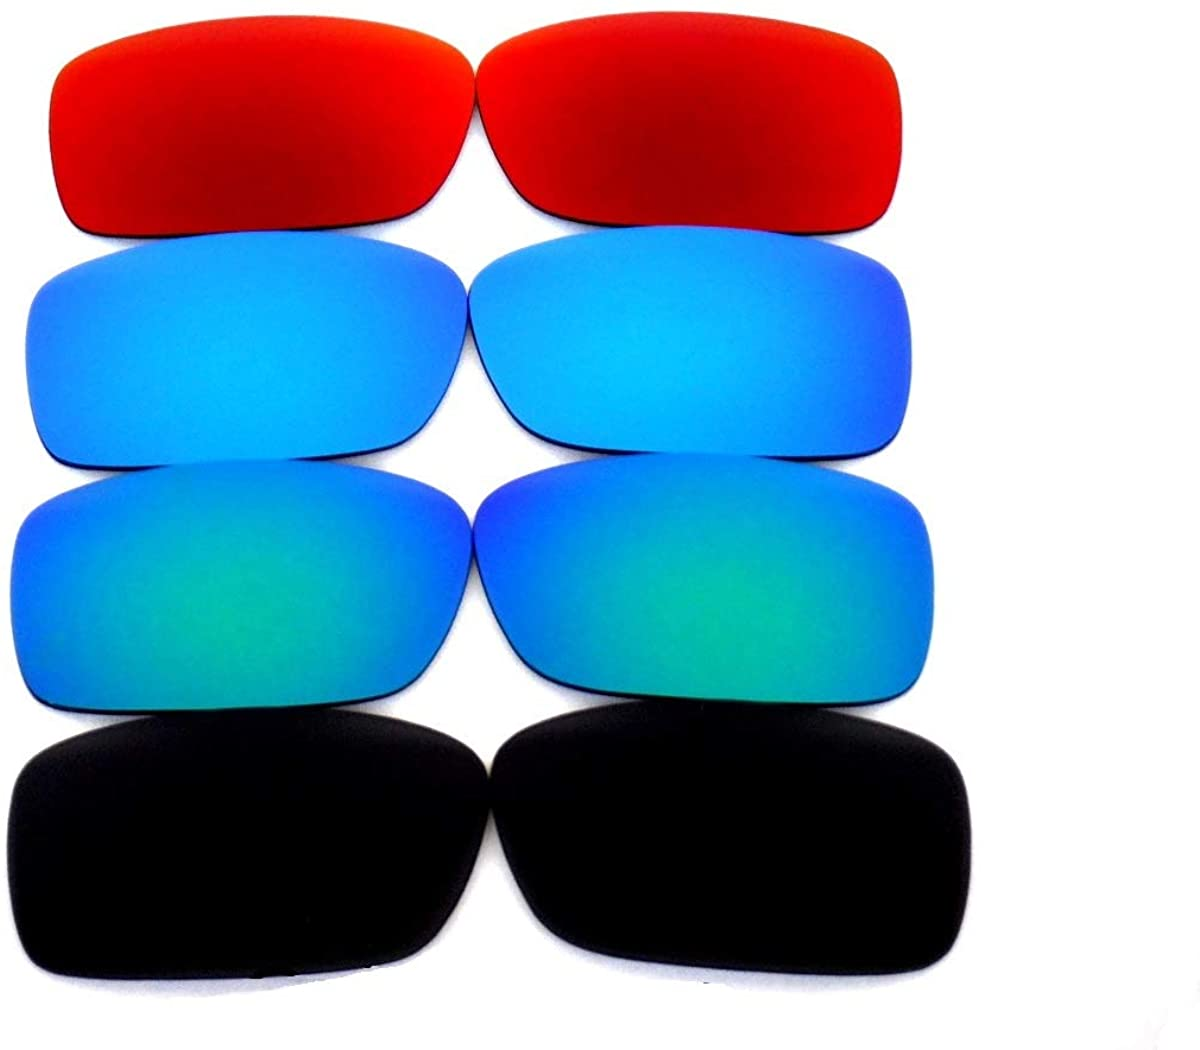 Galaxy Replacement Lenses For Oakley Crankcase Sunglasses Black/Green/Blue/Red Polarized 100% UVAB